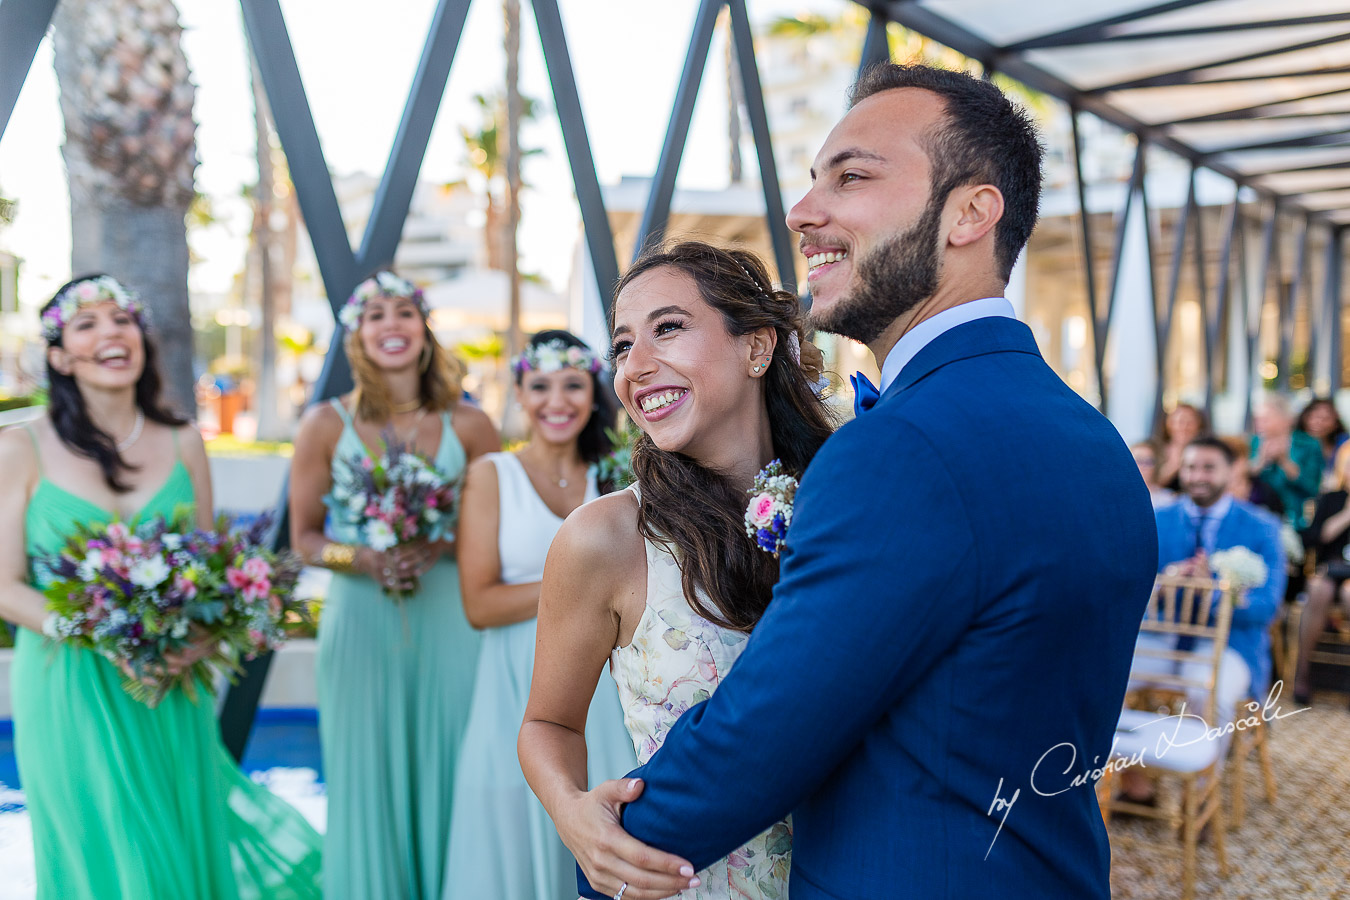 Genuine moments with the bride and groom during the ceremony, as part of an Exclusive Wedding photography at Grand Resort Limassol, captured by Cyprus Wedding Photographer Cristian Dascalu.